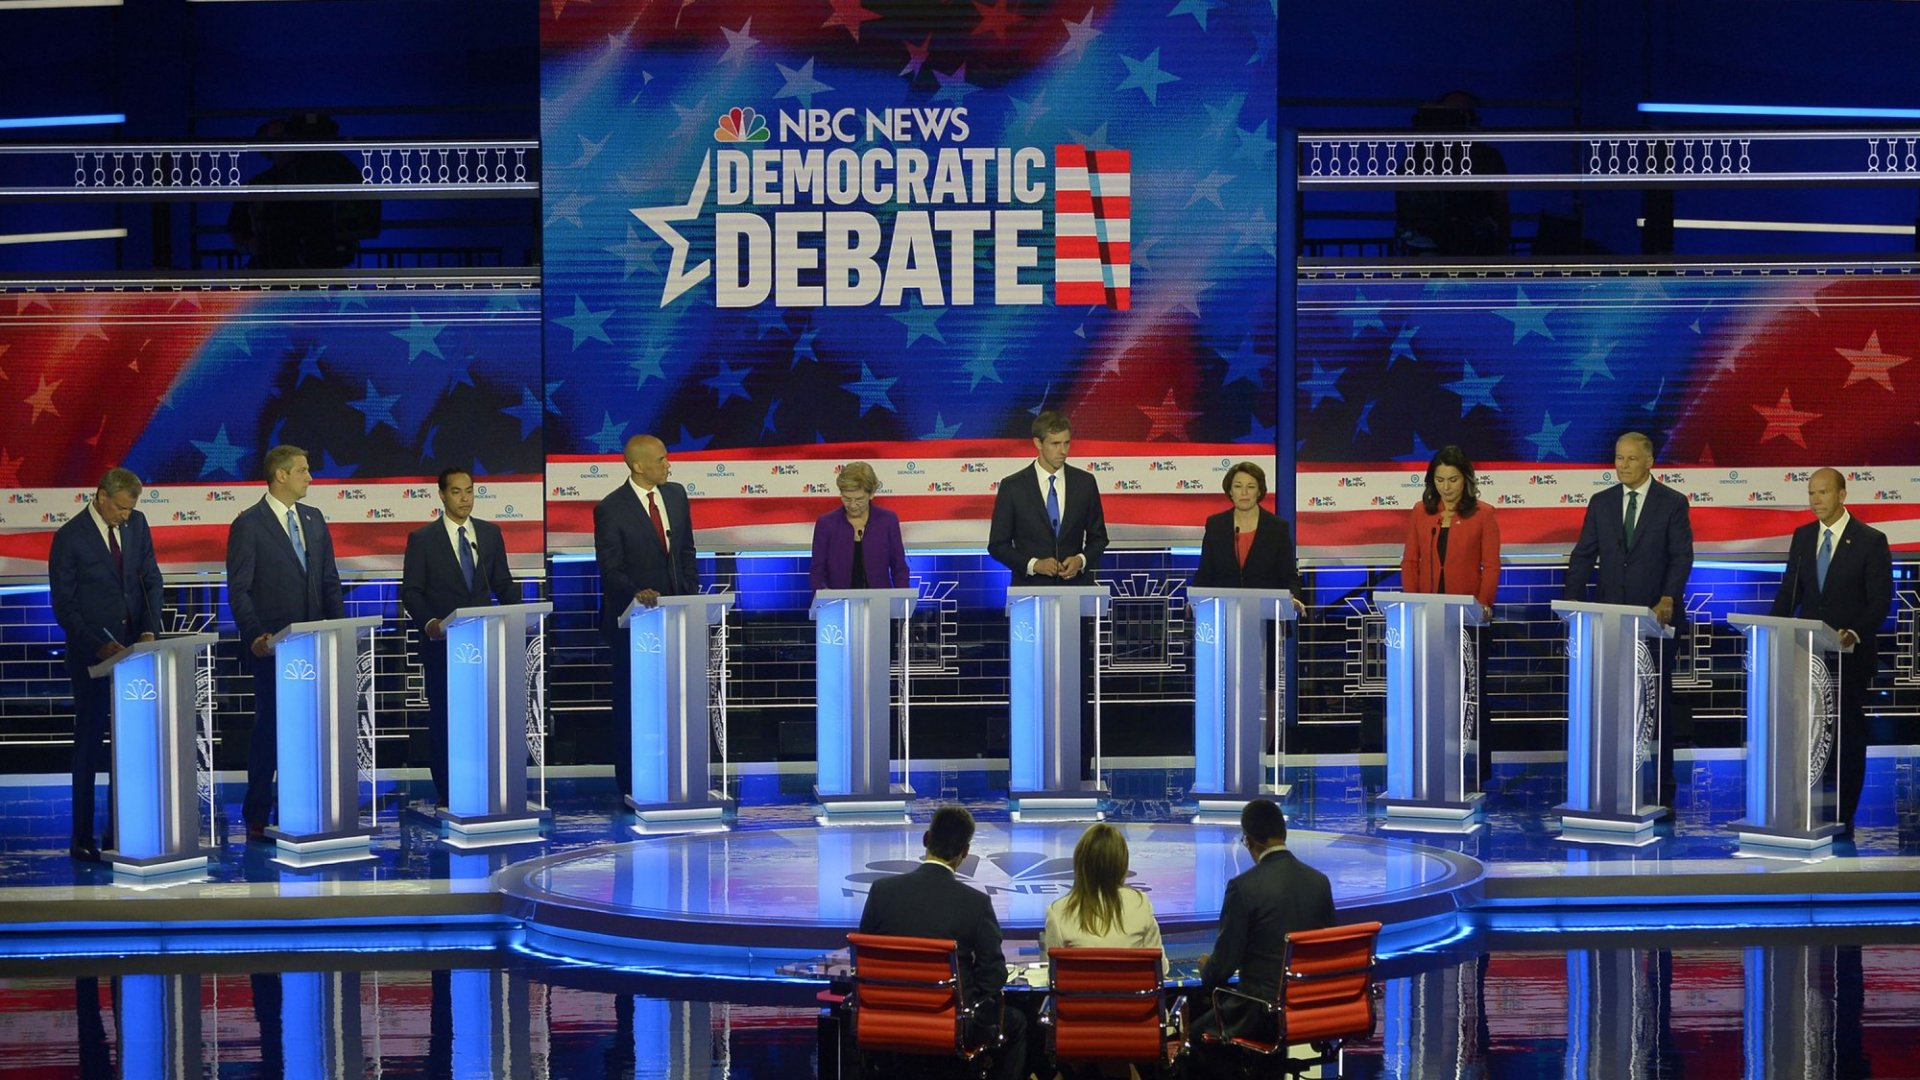 With the Past Two Nights' Democratic Debates, We Officially Kick off the Country's Worst Job Interview Process